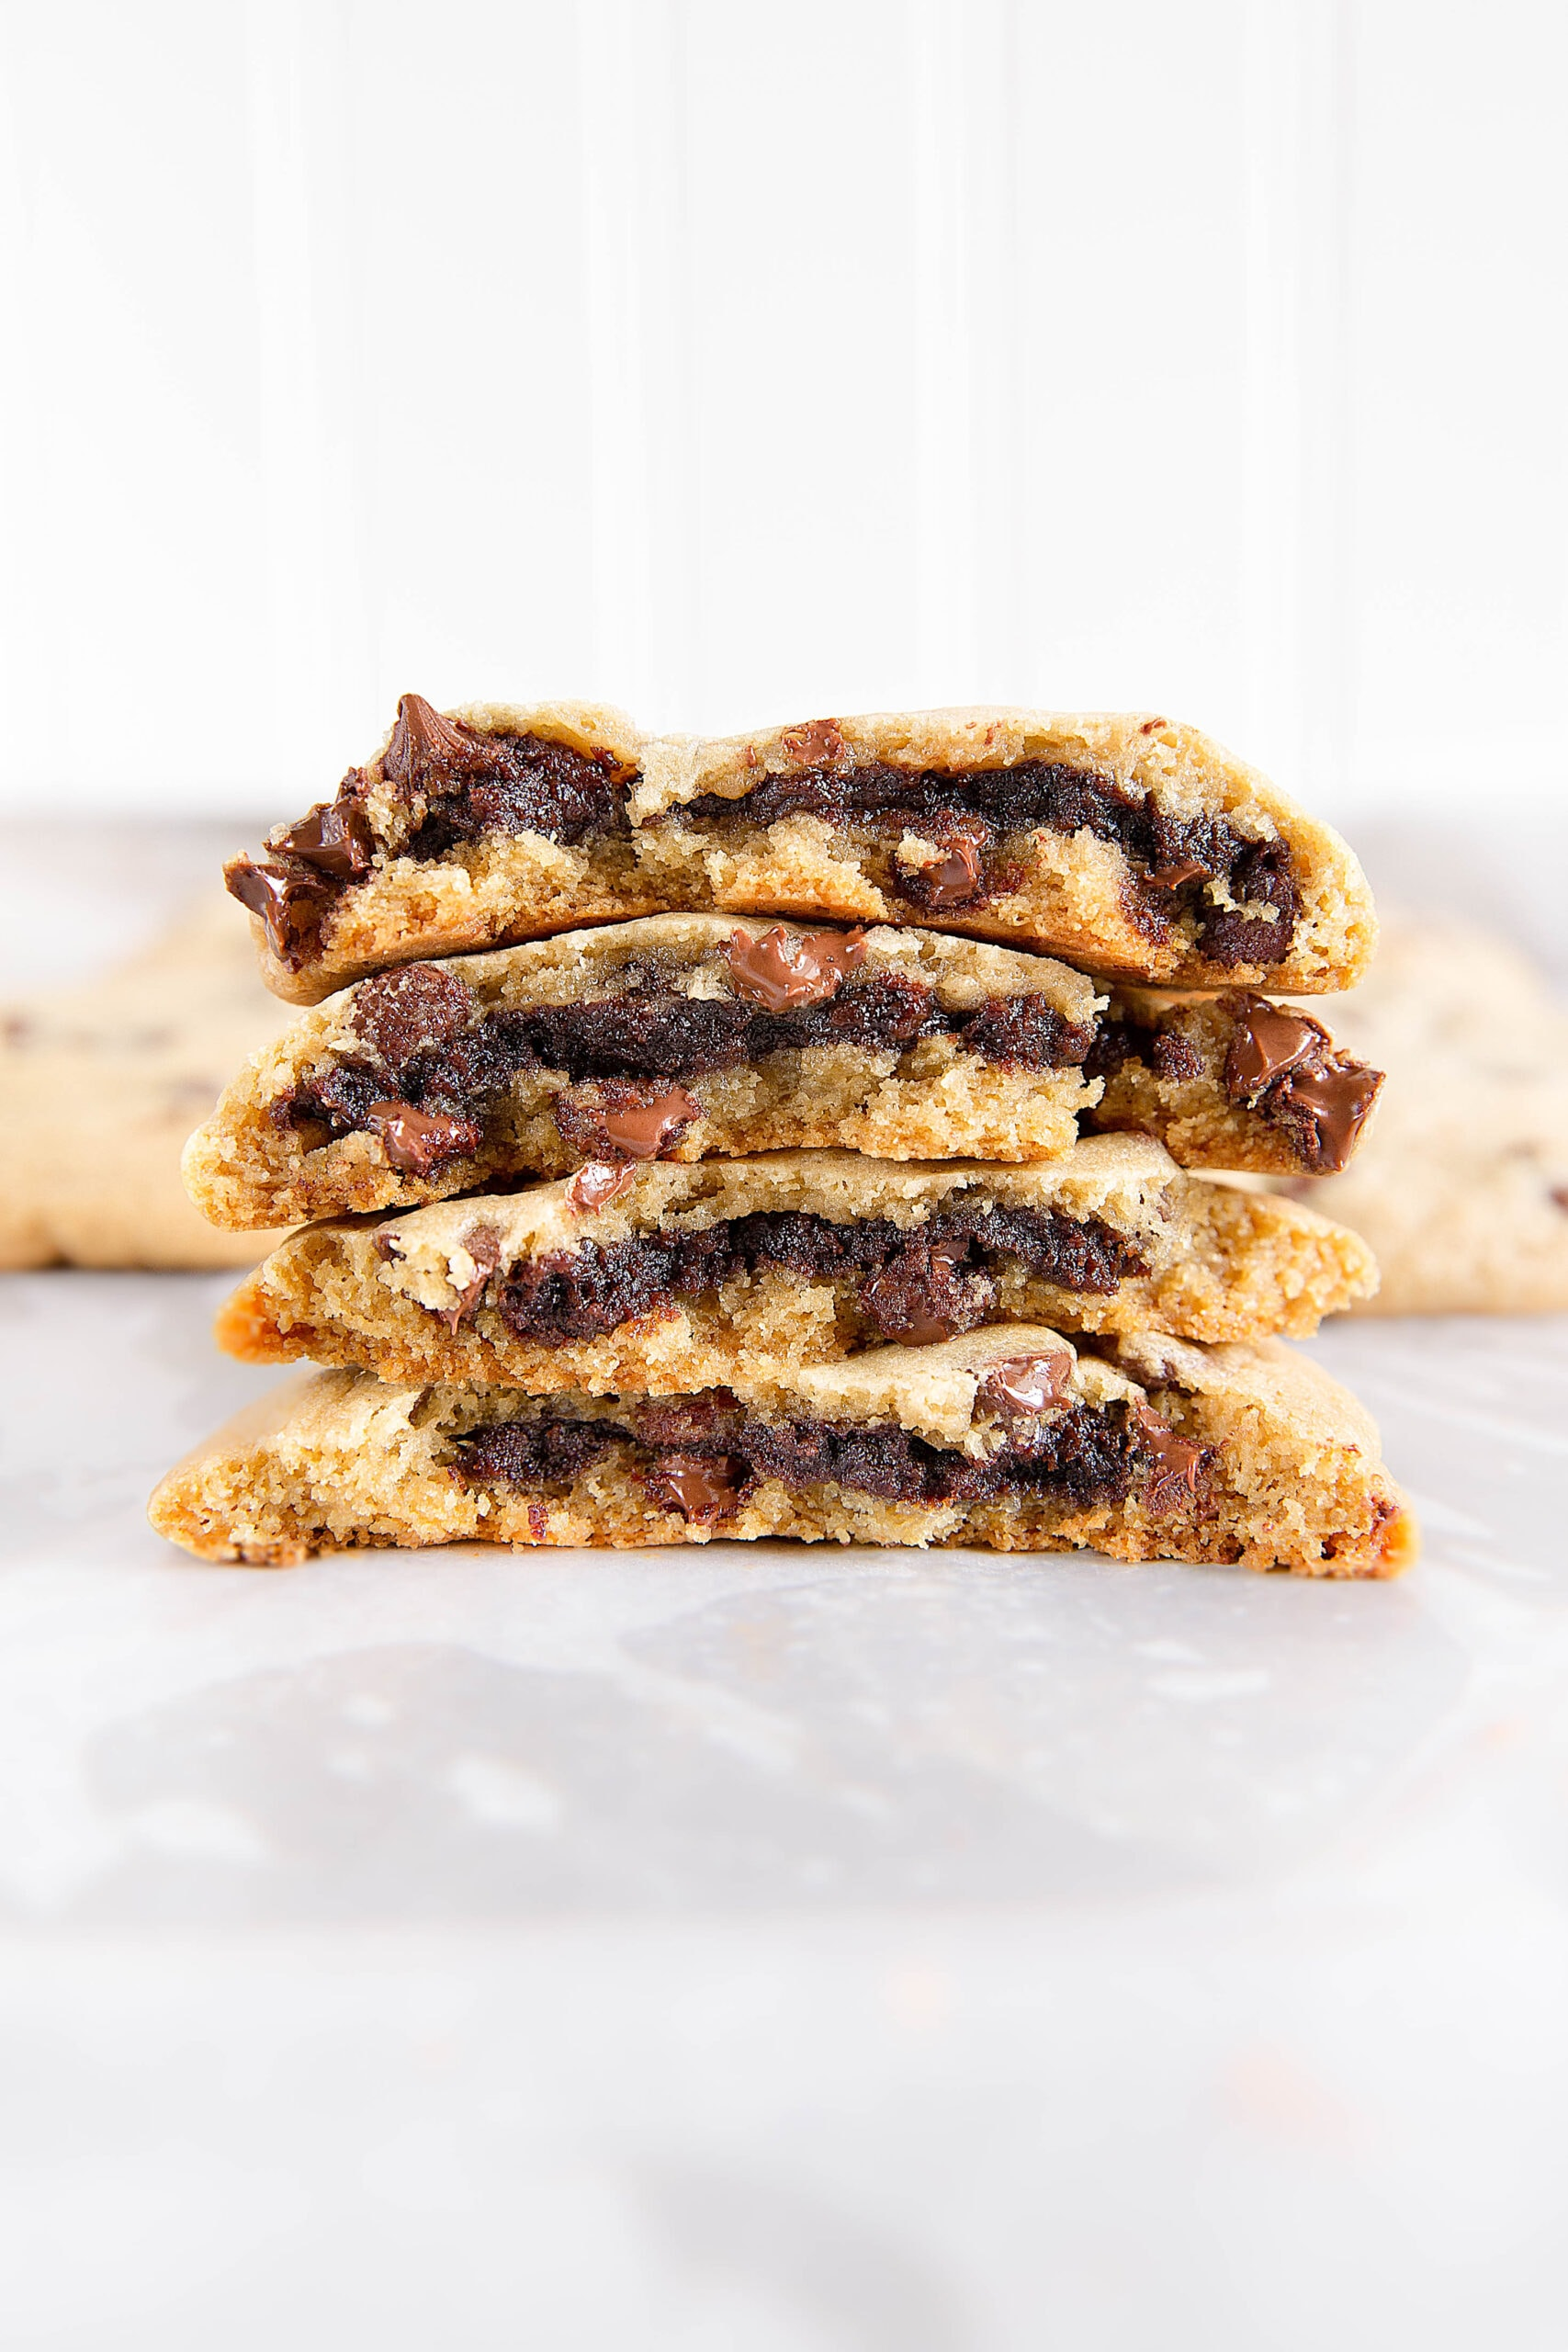 Brownie stuffed chocolate chip cookies combine the best of both worlds- a fudgy brownie center and soft and chewy chocolate chip cookies! These babies are dangerously good.